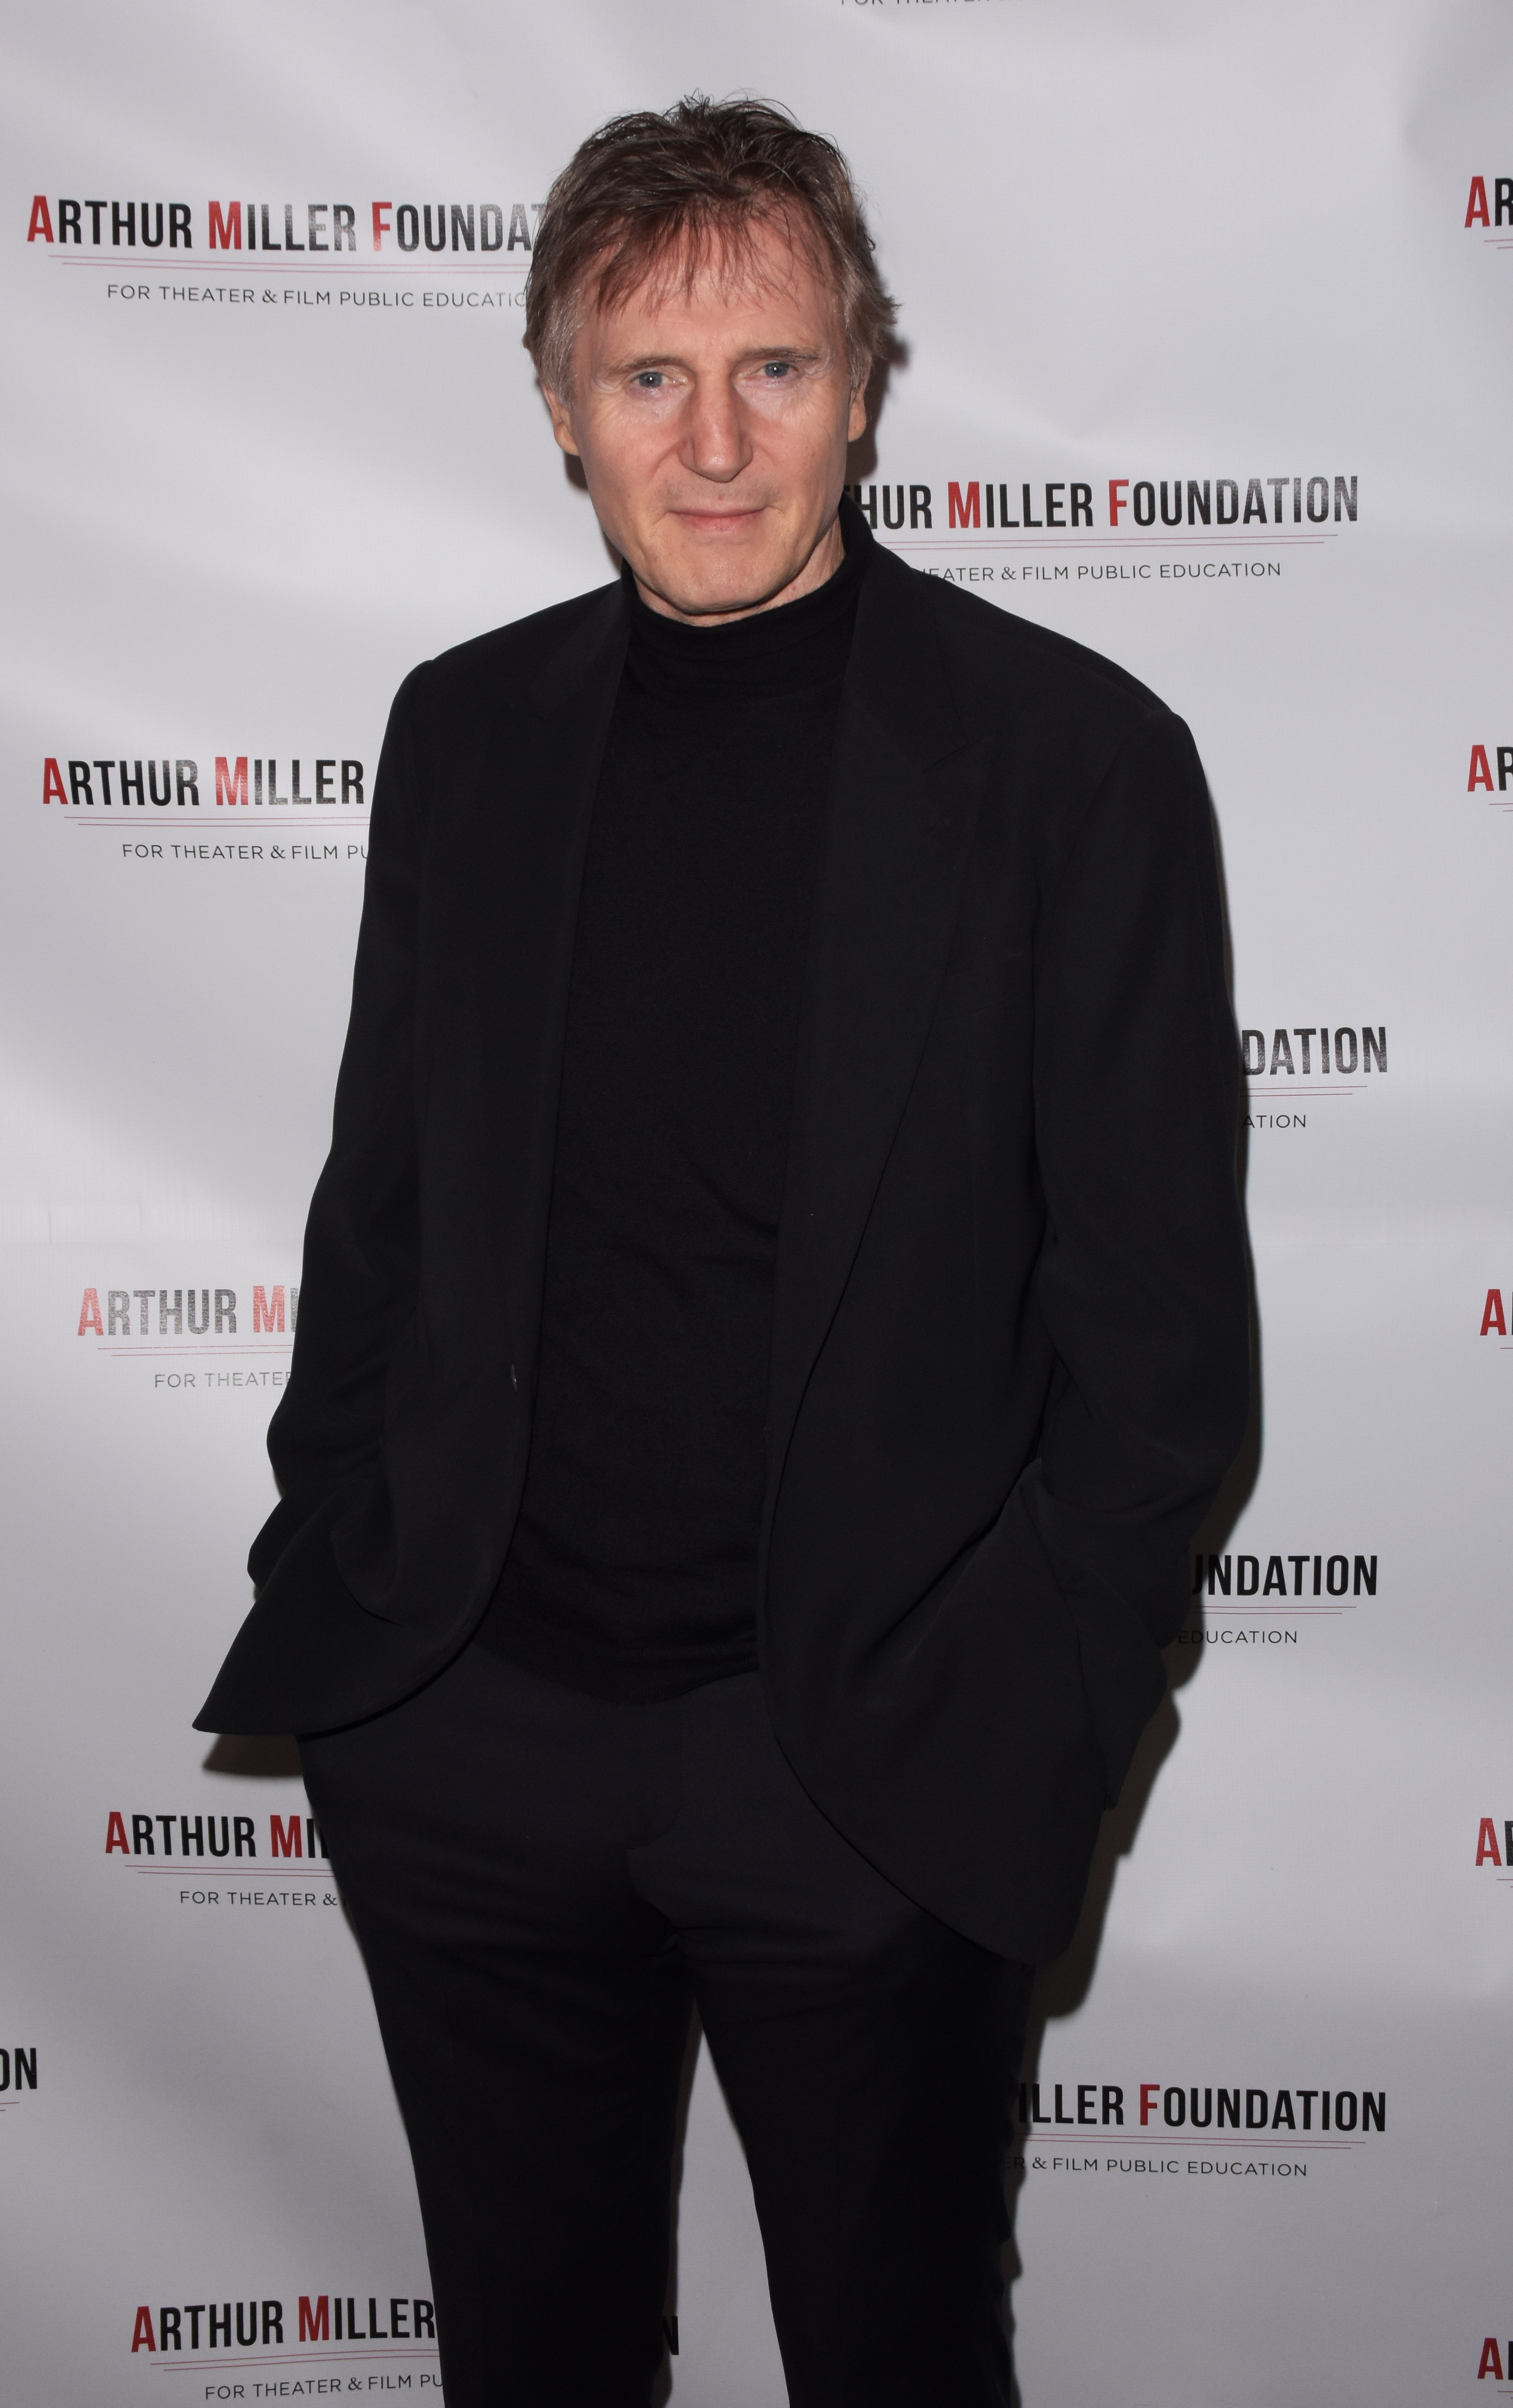 Liam Neeson denies being racist as he clarifies comments